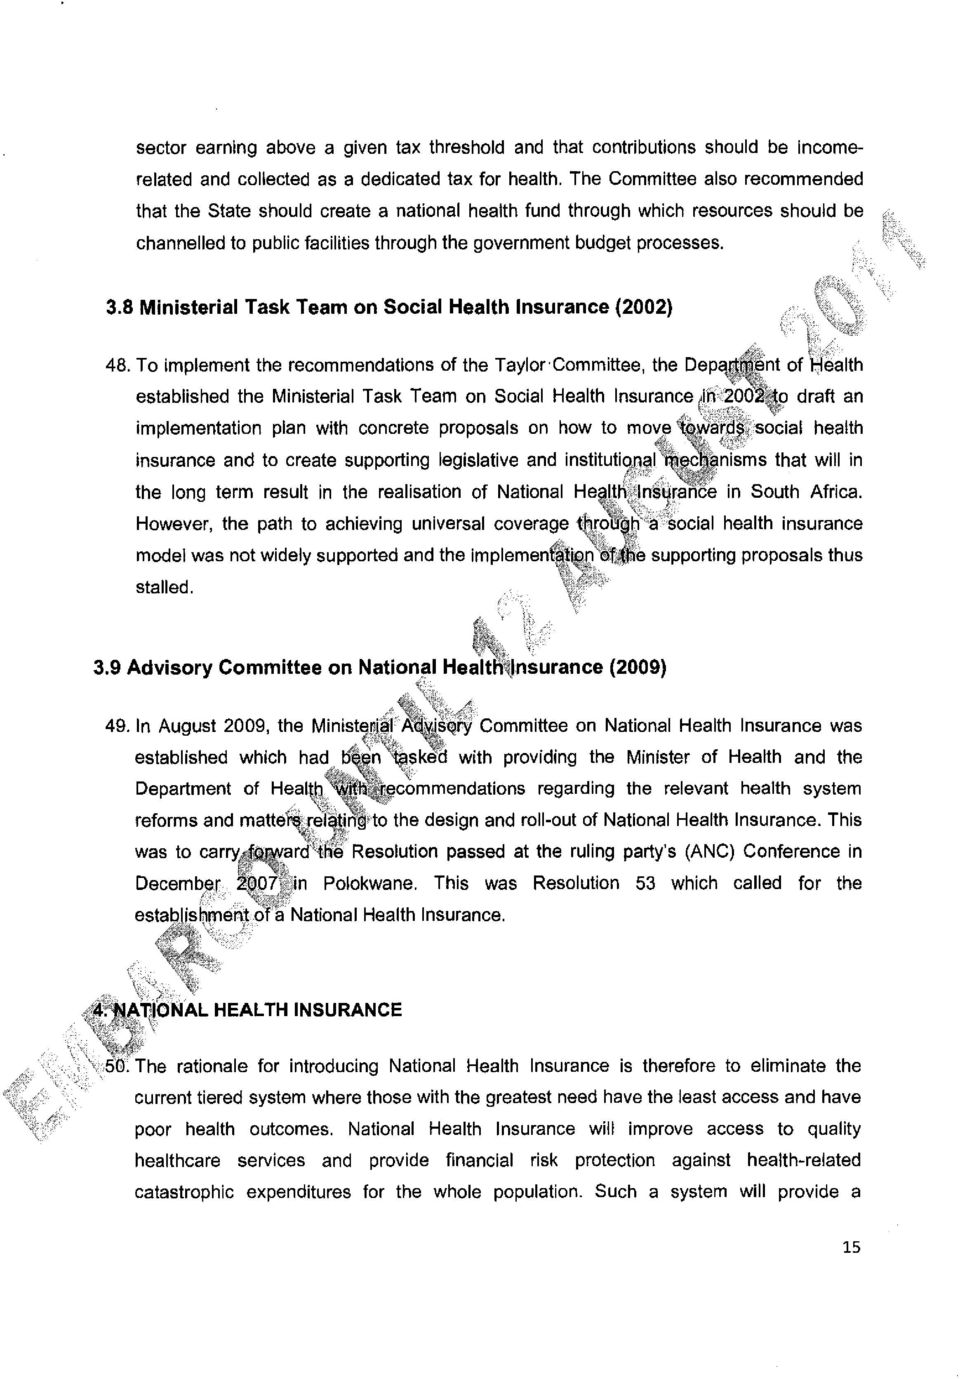 8 Ministerial Task Team on Social Health Insurance (2002) 48. To implement the recommendations of the Taylor Committee, the of 'Health established the Ministerial Task Team on Social Health Insurance.